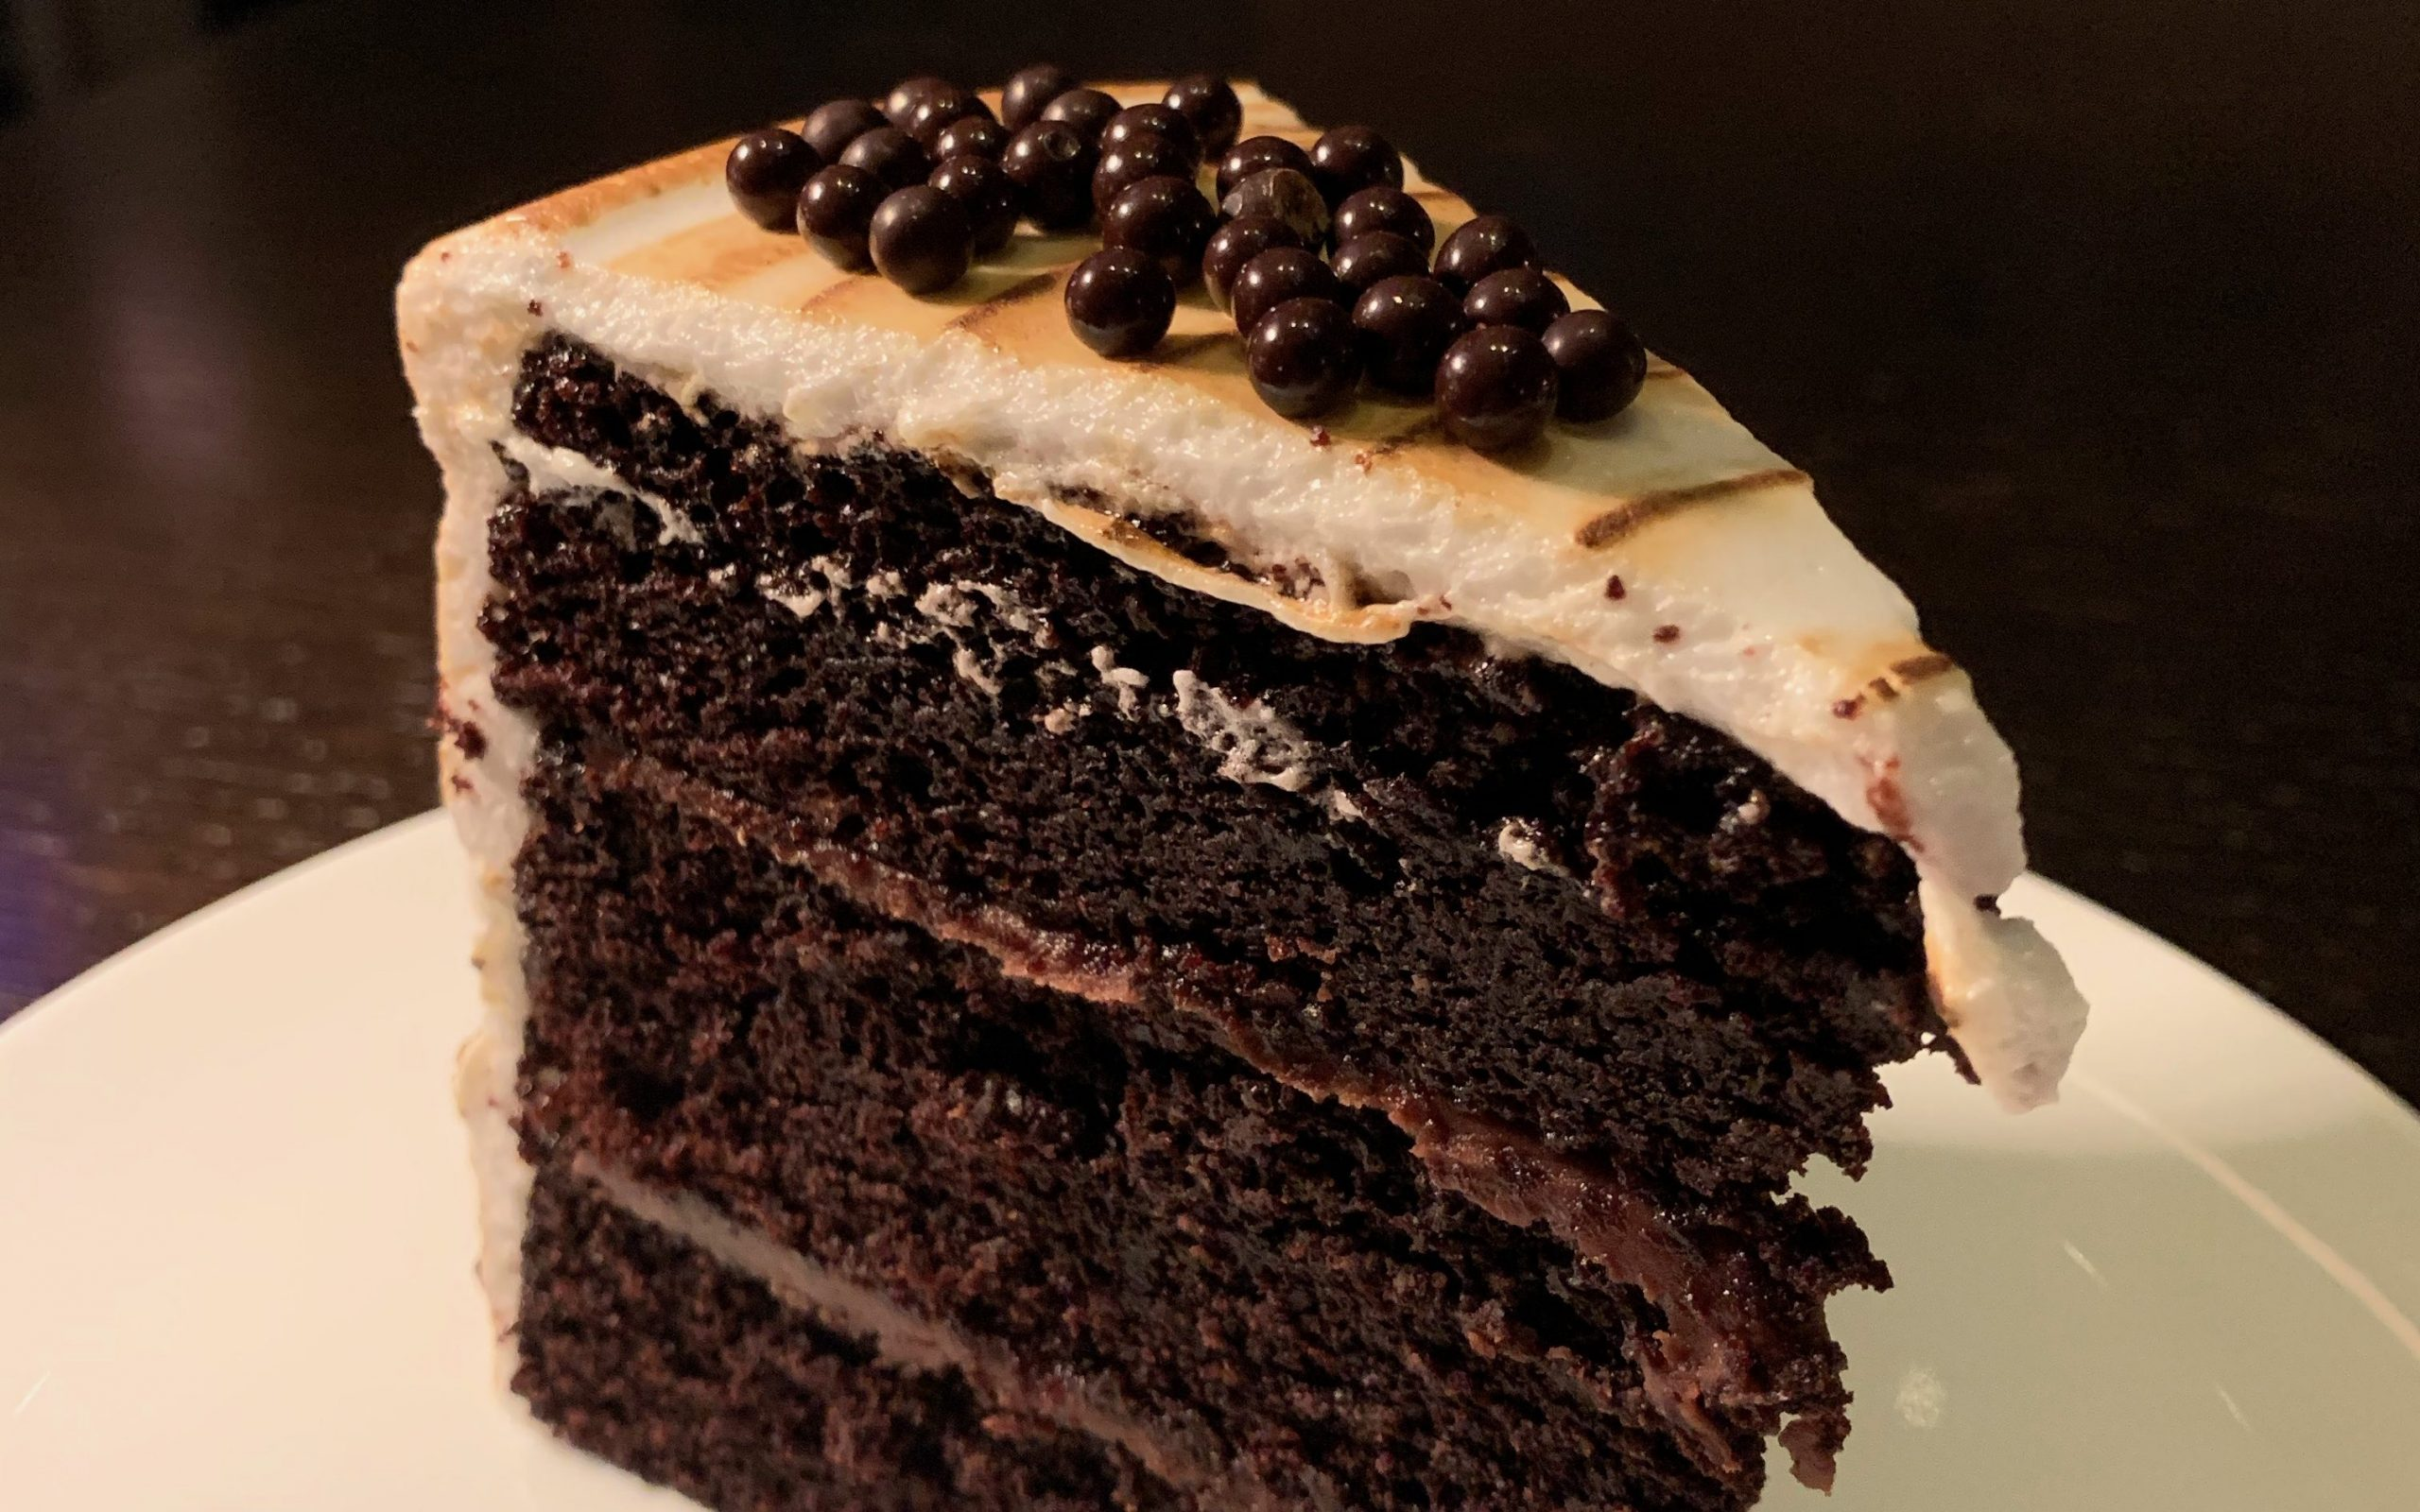 zoomed in image of chocolate cake dessert